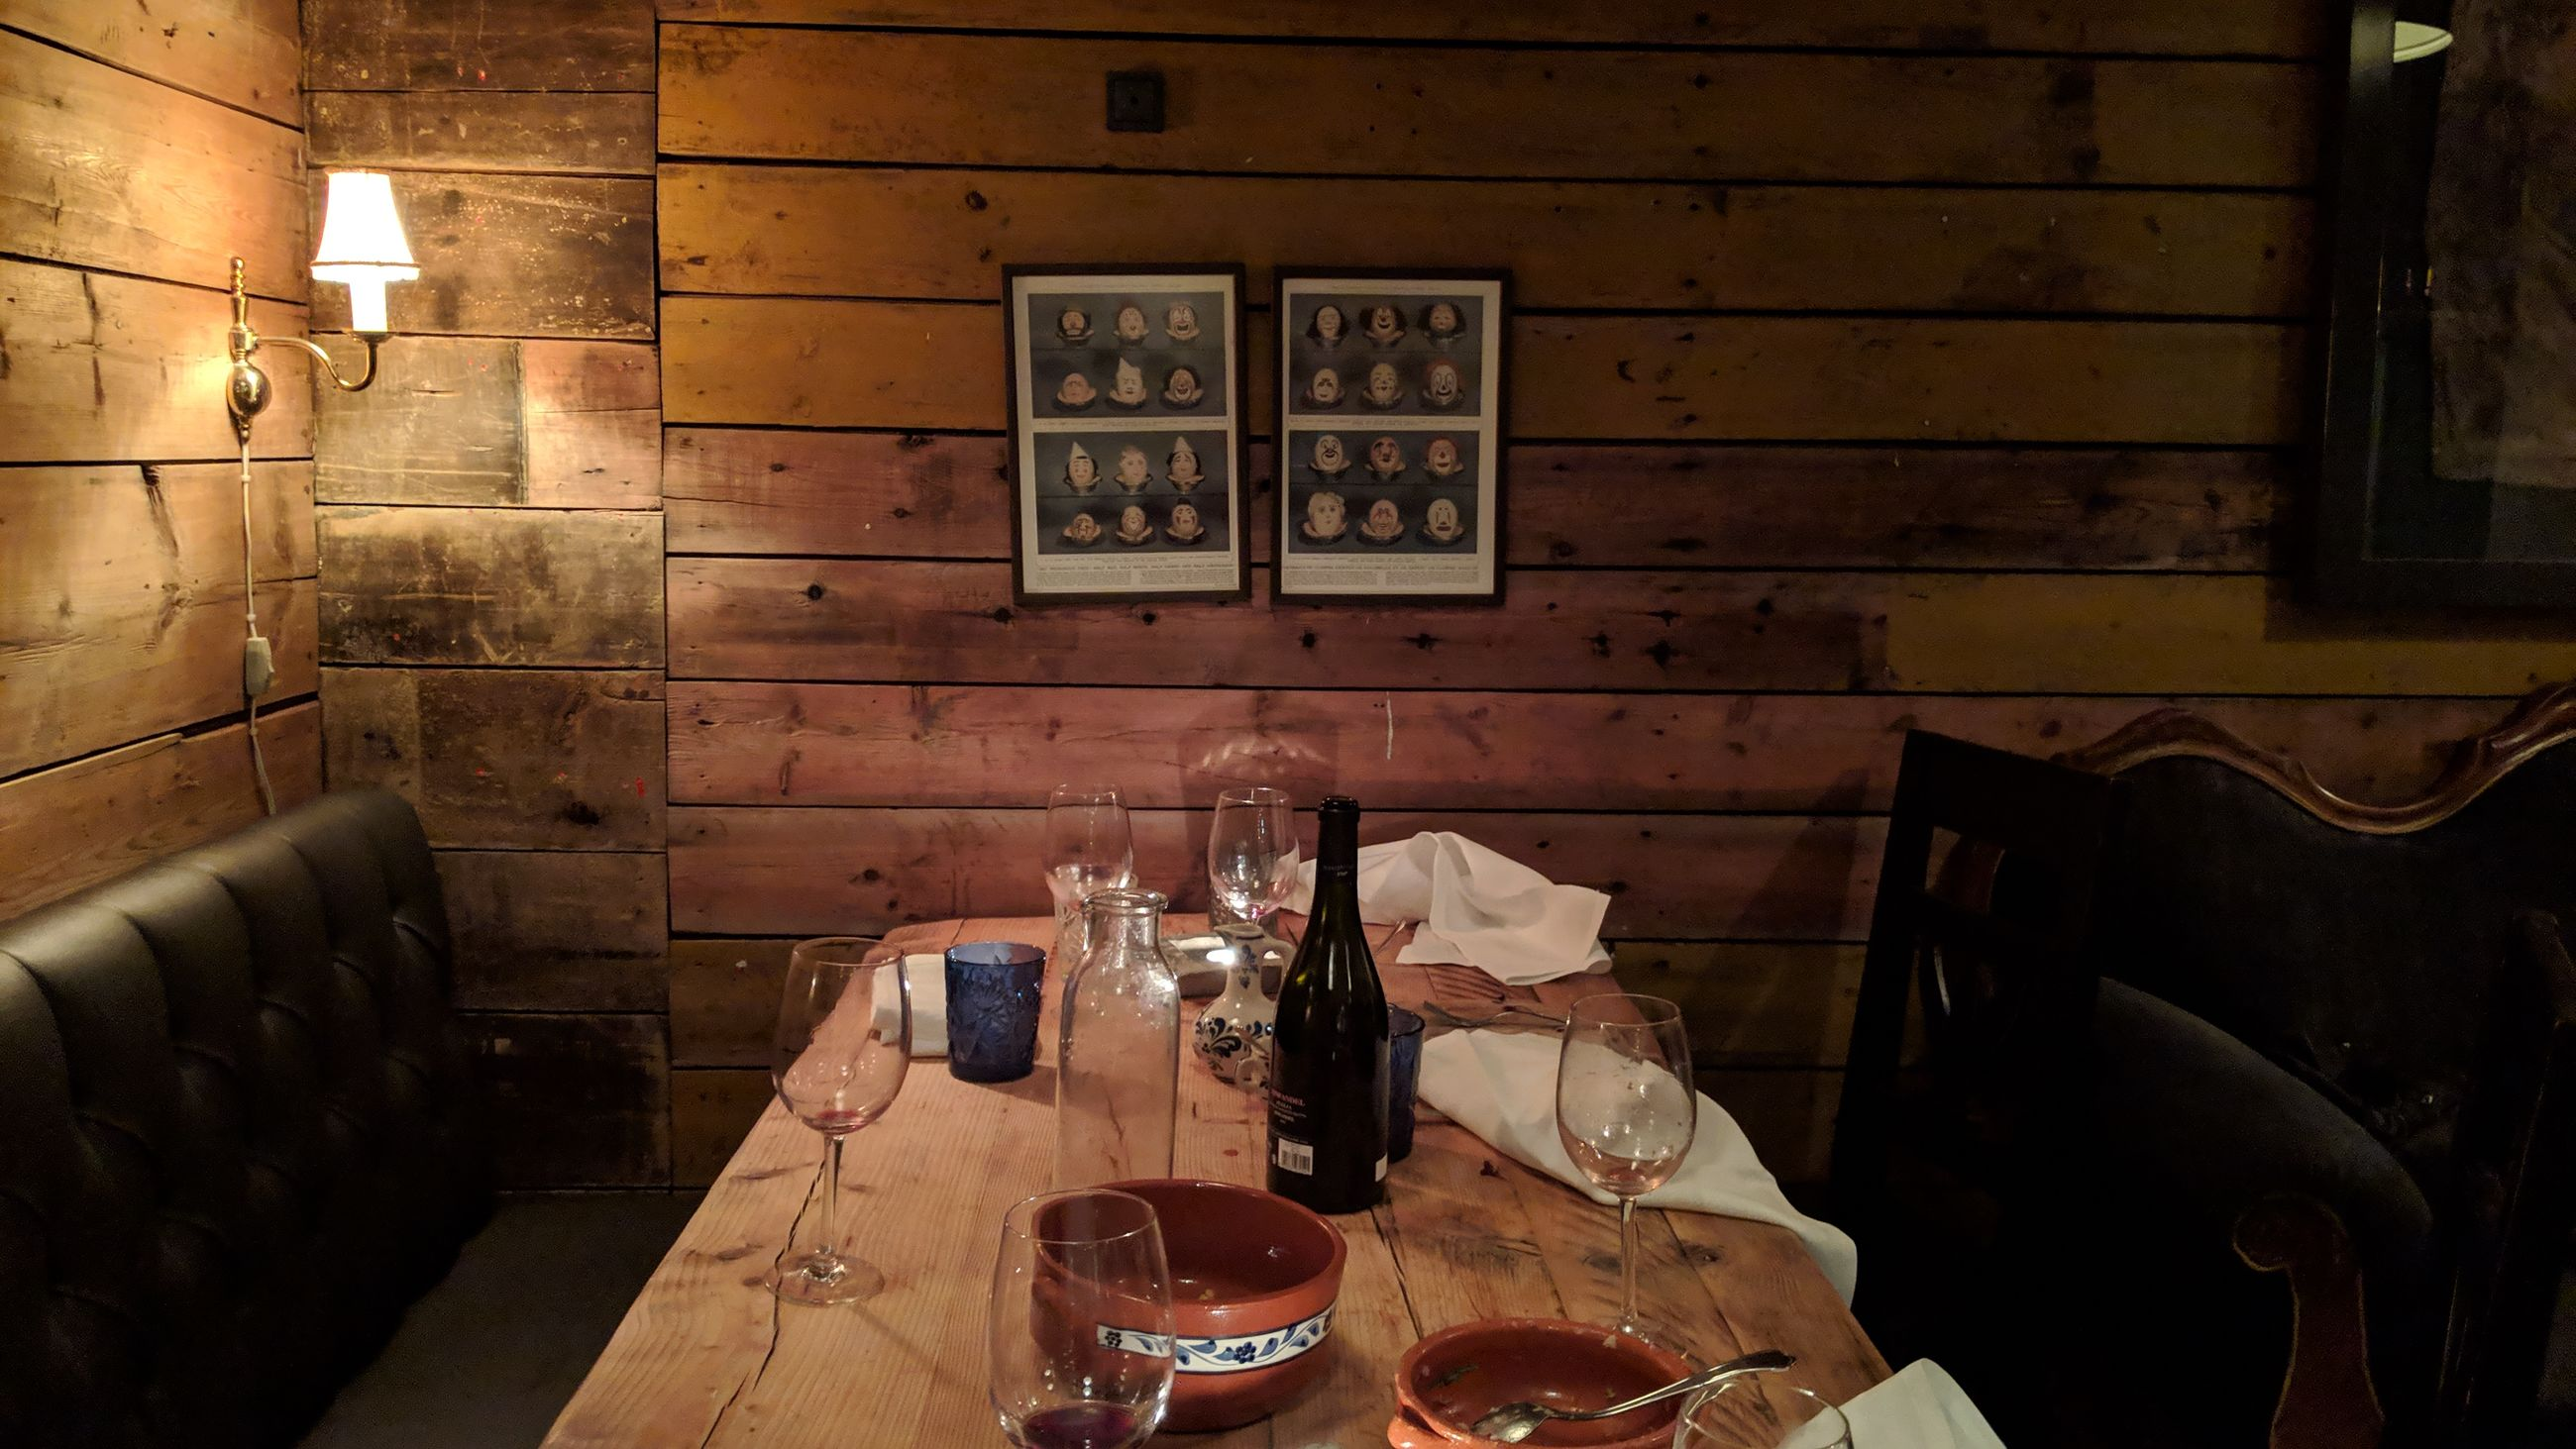 indoors, food and drink, absence, table, glass, seat, chair, drink, still life, no people, household equipment, drinking glass, empty, restaurant, business, glass - material, furniture, wine, alcohol, wood - material, setting, crockery